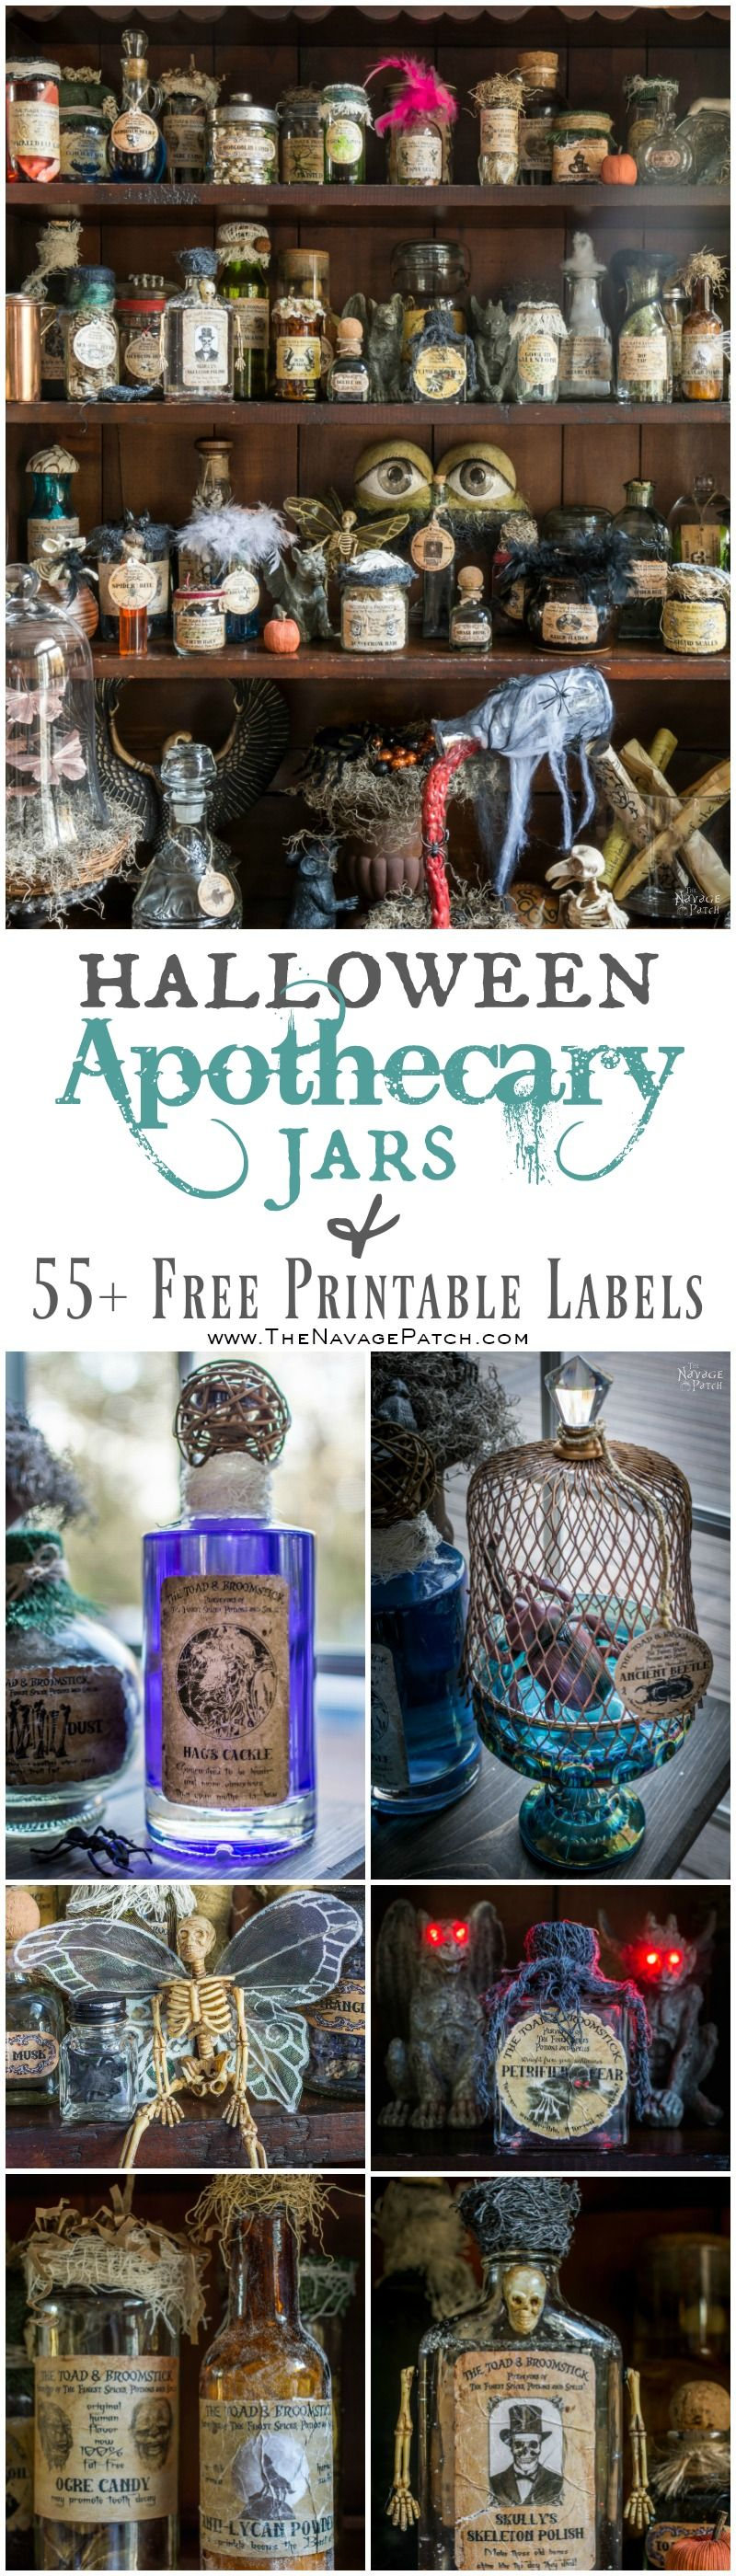 Halloween Apothecary Jars and 55 Free Printable Potion Bottle Labels - TheNavagePatch.com